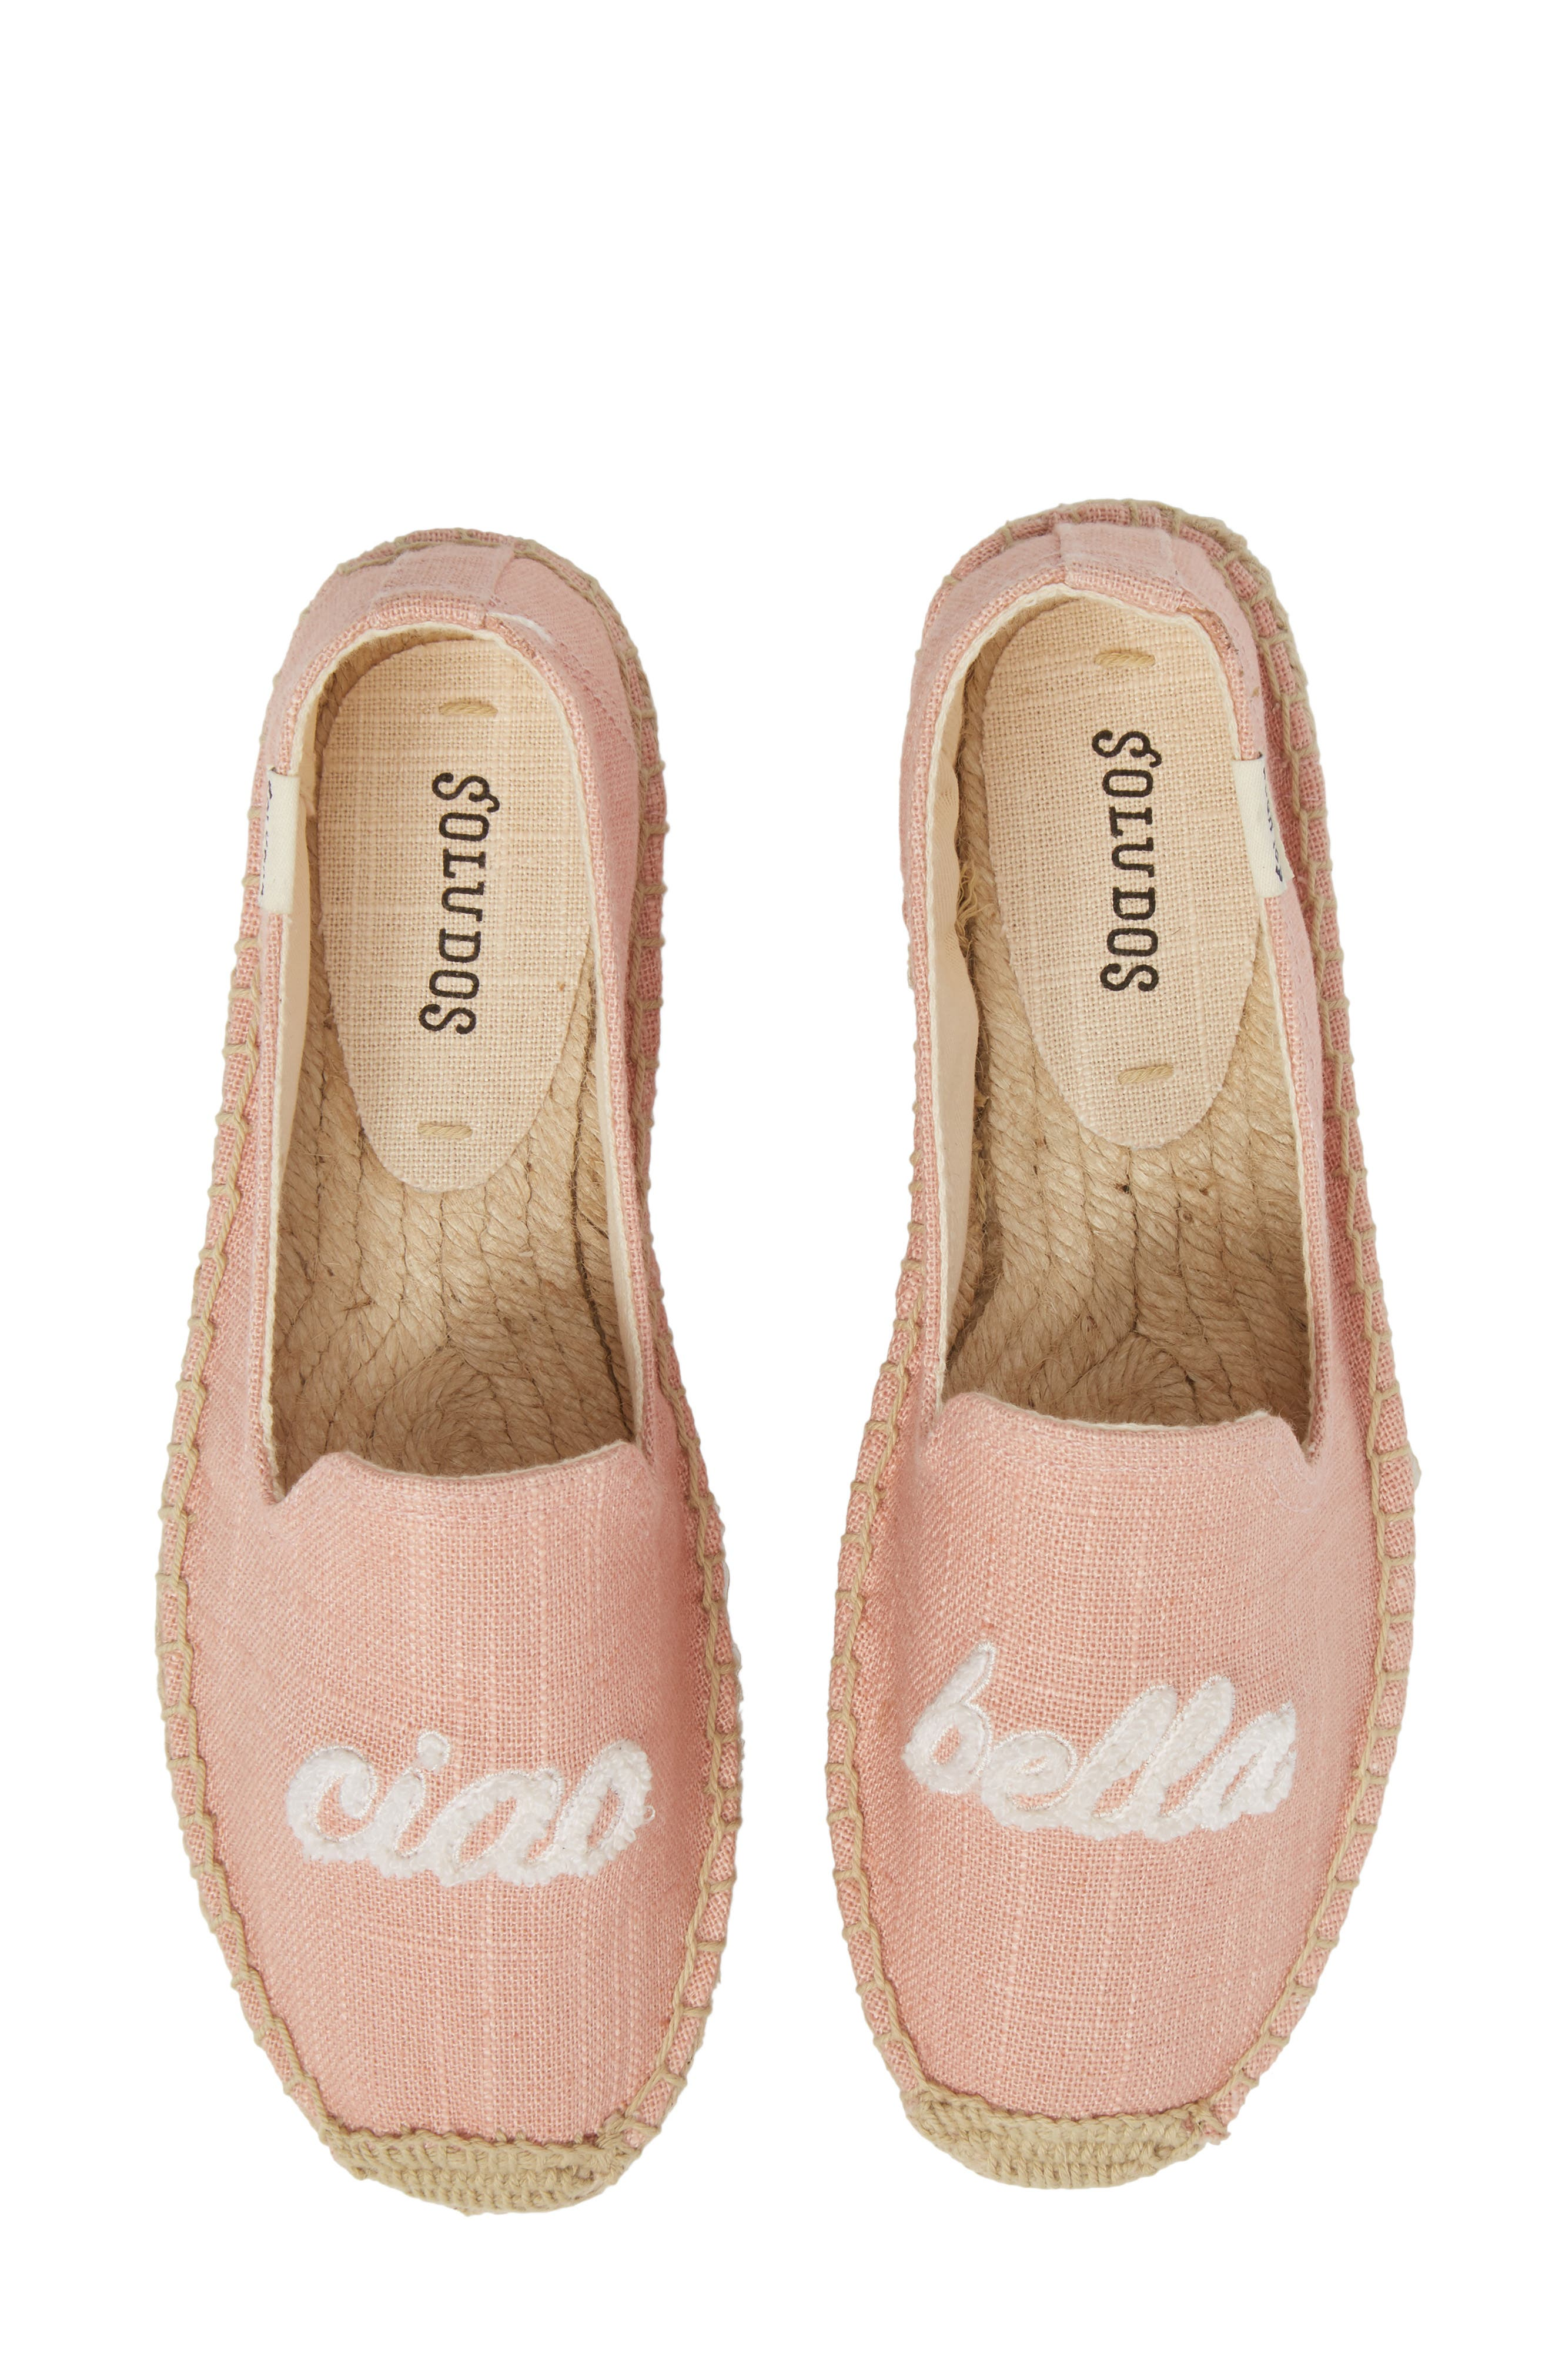 SOLUDOS, Ciao Bella Espadrille Flat, Main thumbnail 1, color, DUSTY ROSE FABRIC